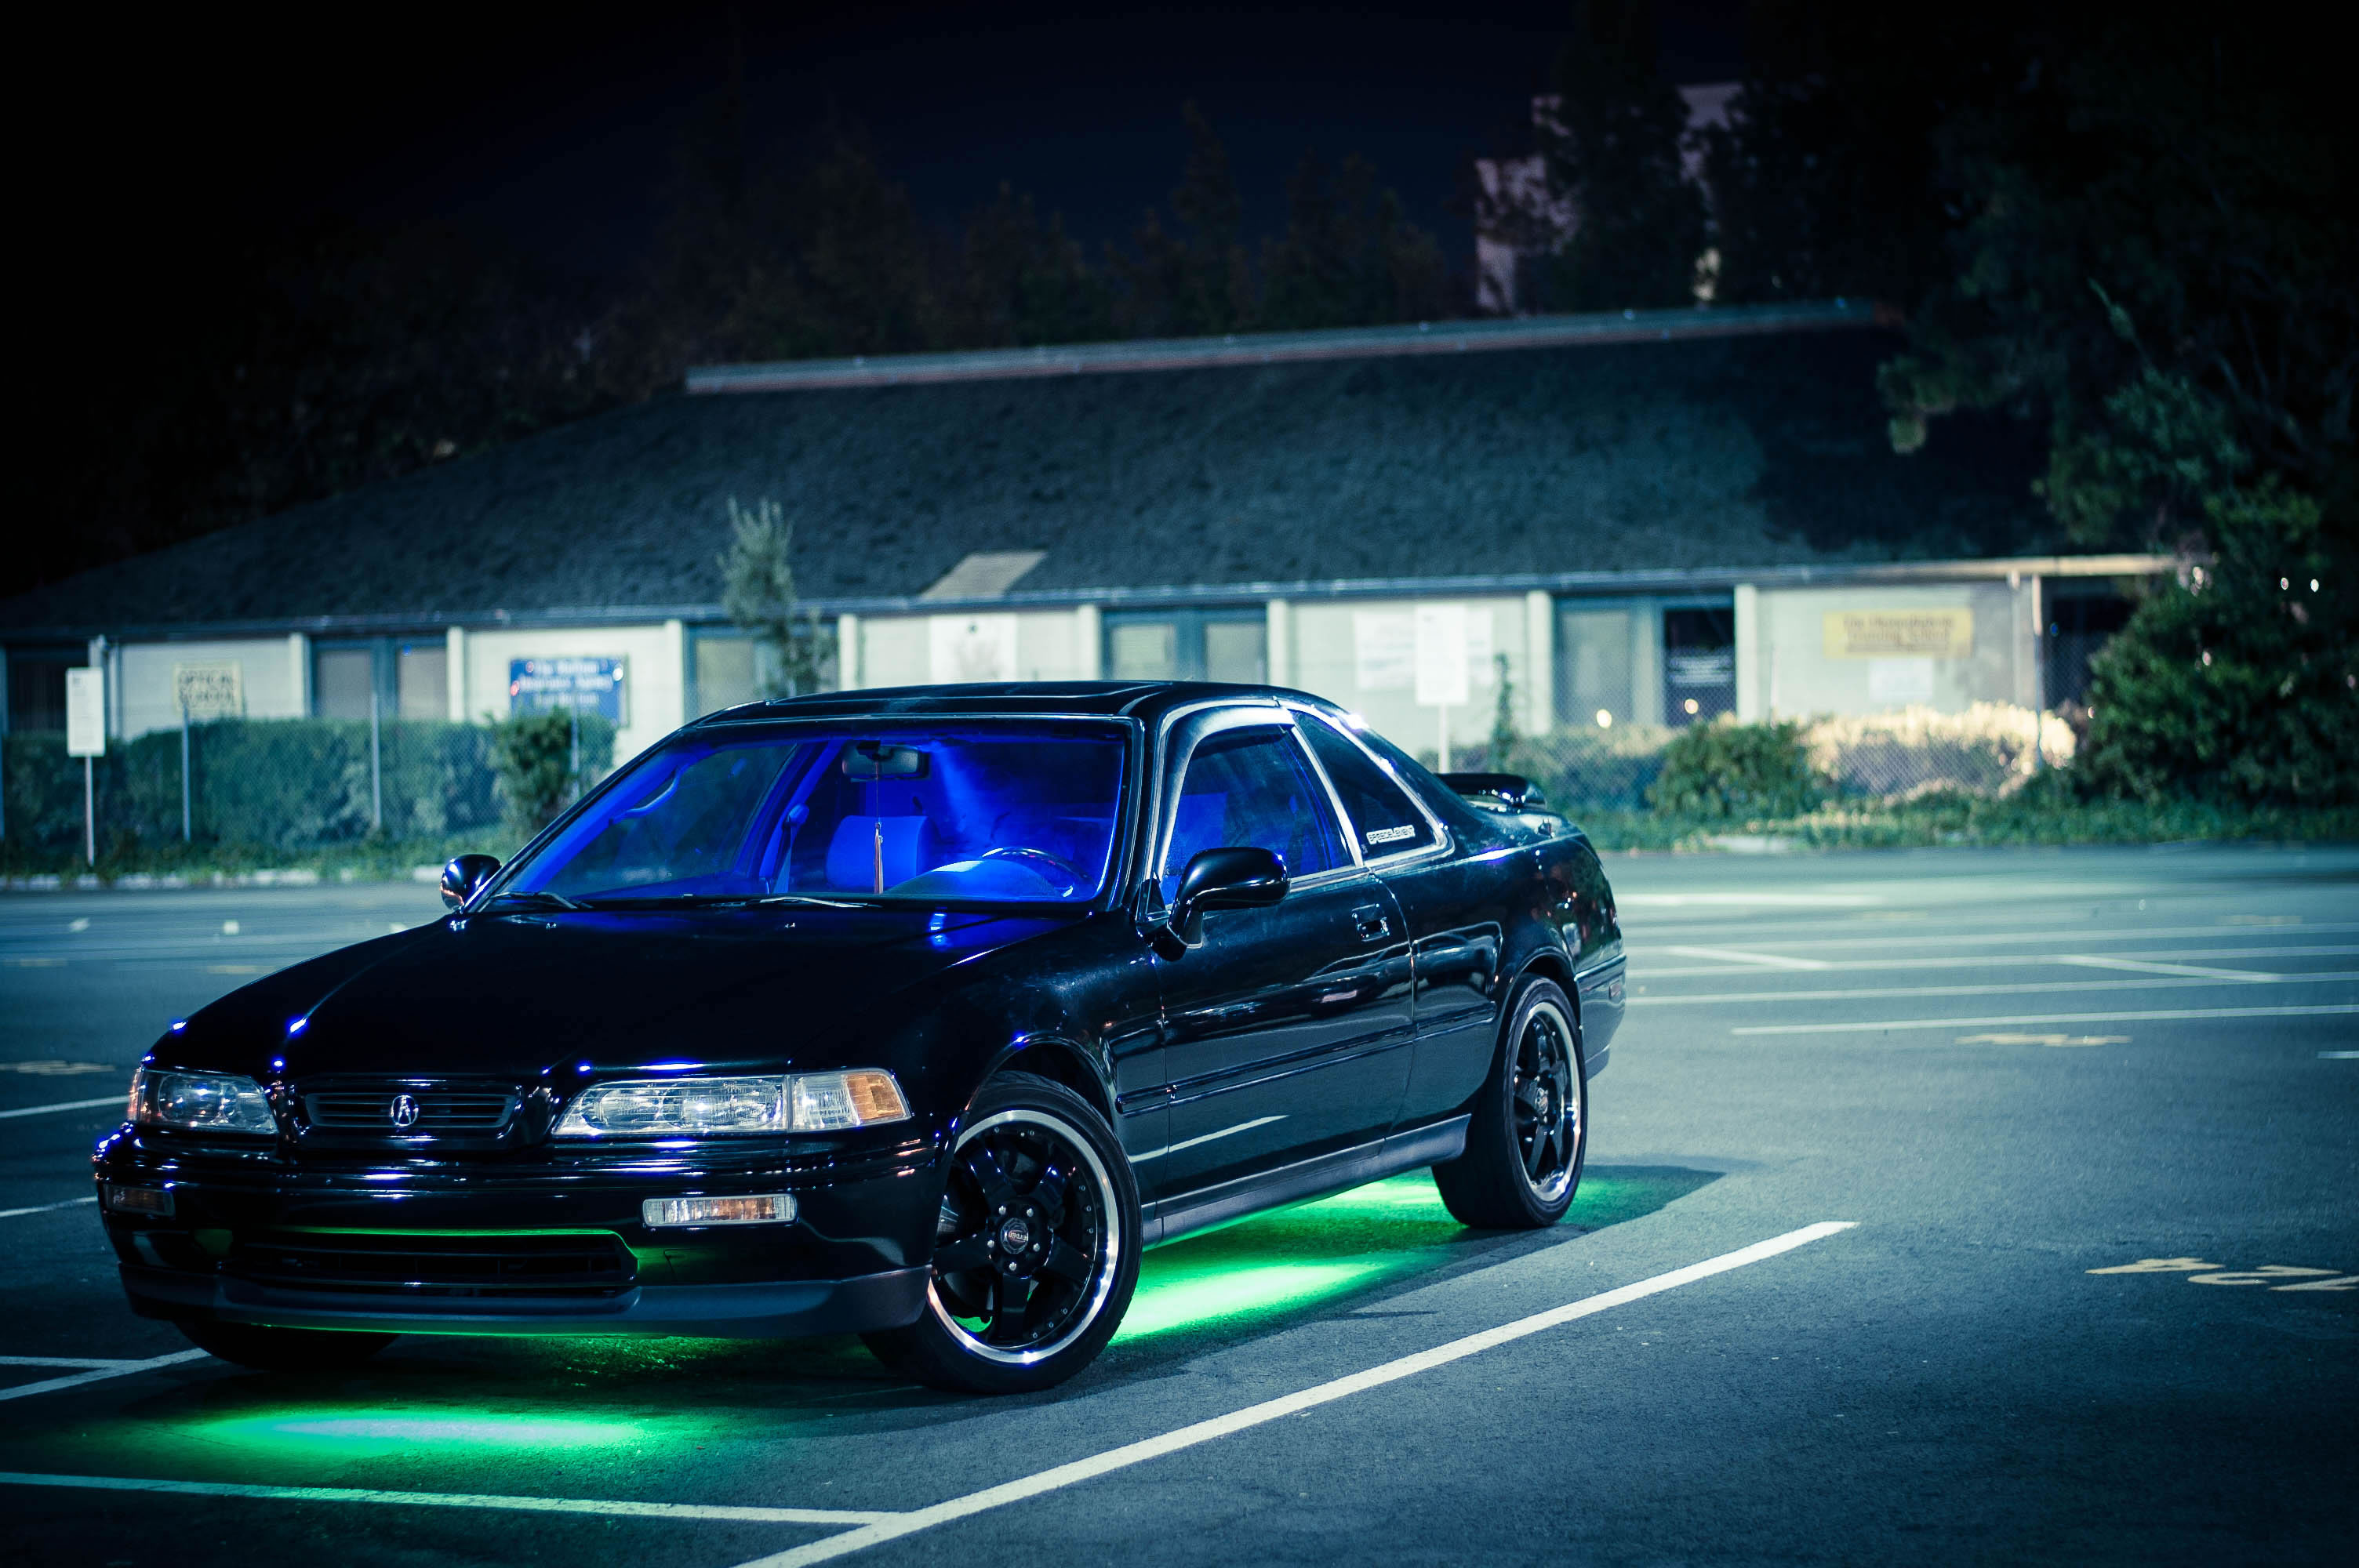 Why is underglow illegal neon underglow laws - Underglow neon ...